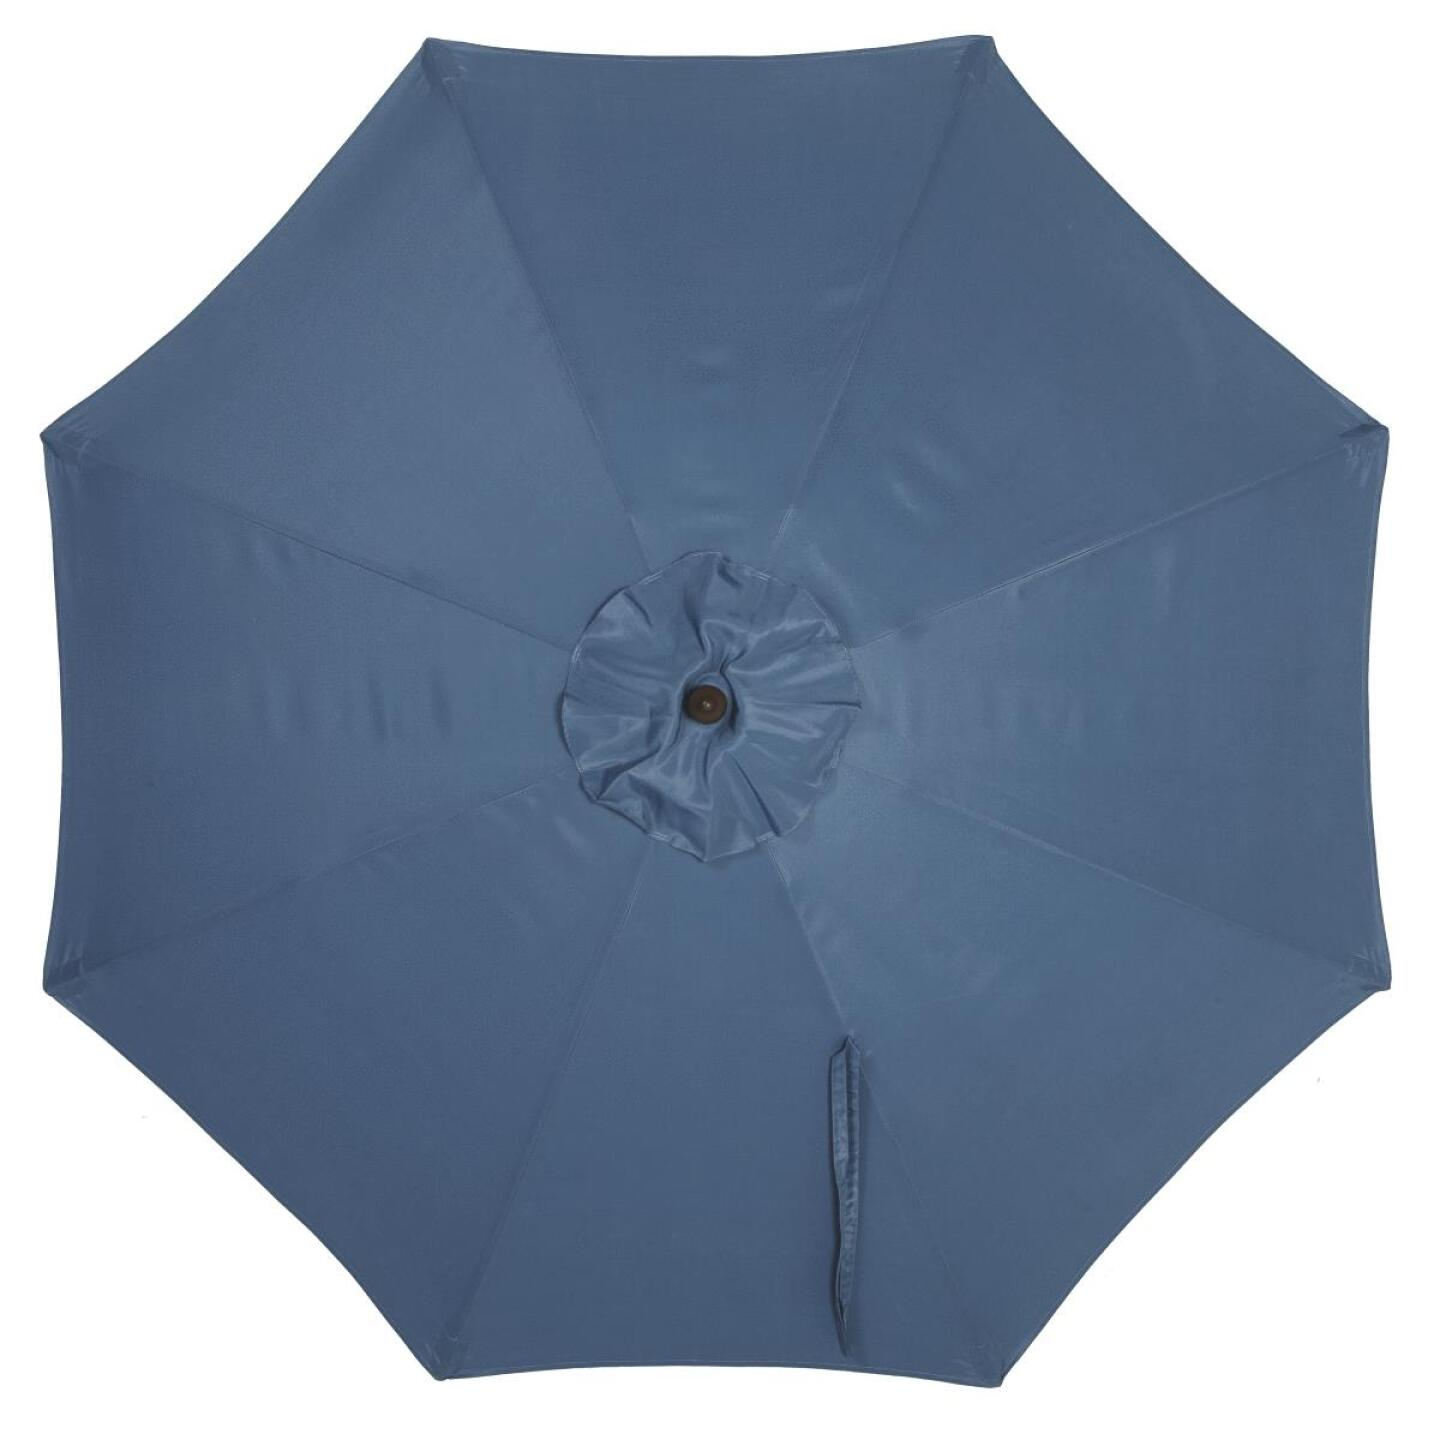 Outdoor Expressions 7.5 Ft. Pulley Heather Blue Market Patio Umbrella with Chrome Plated Hardware Image 3